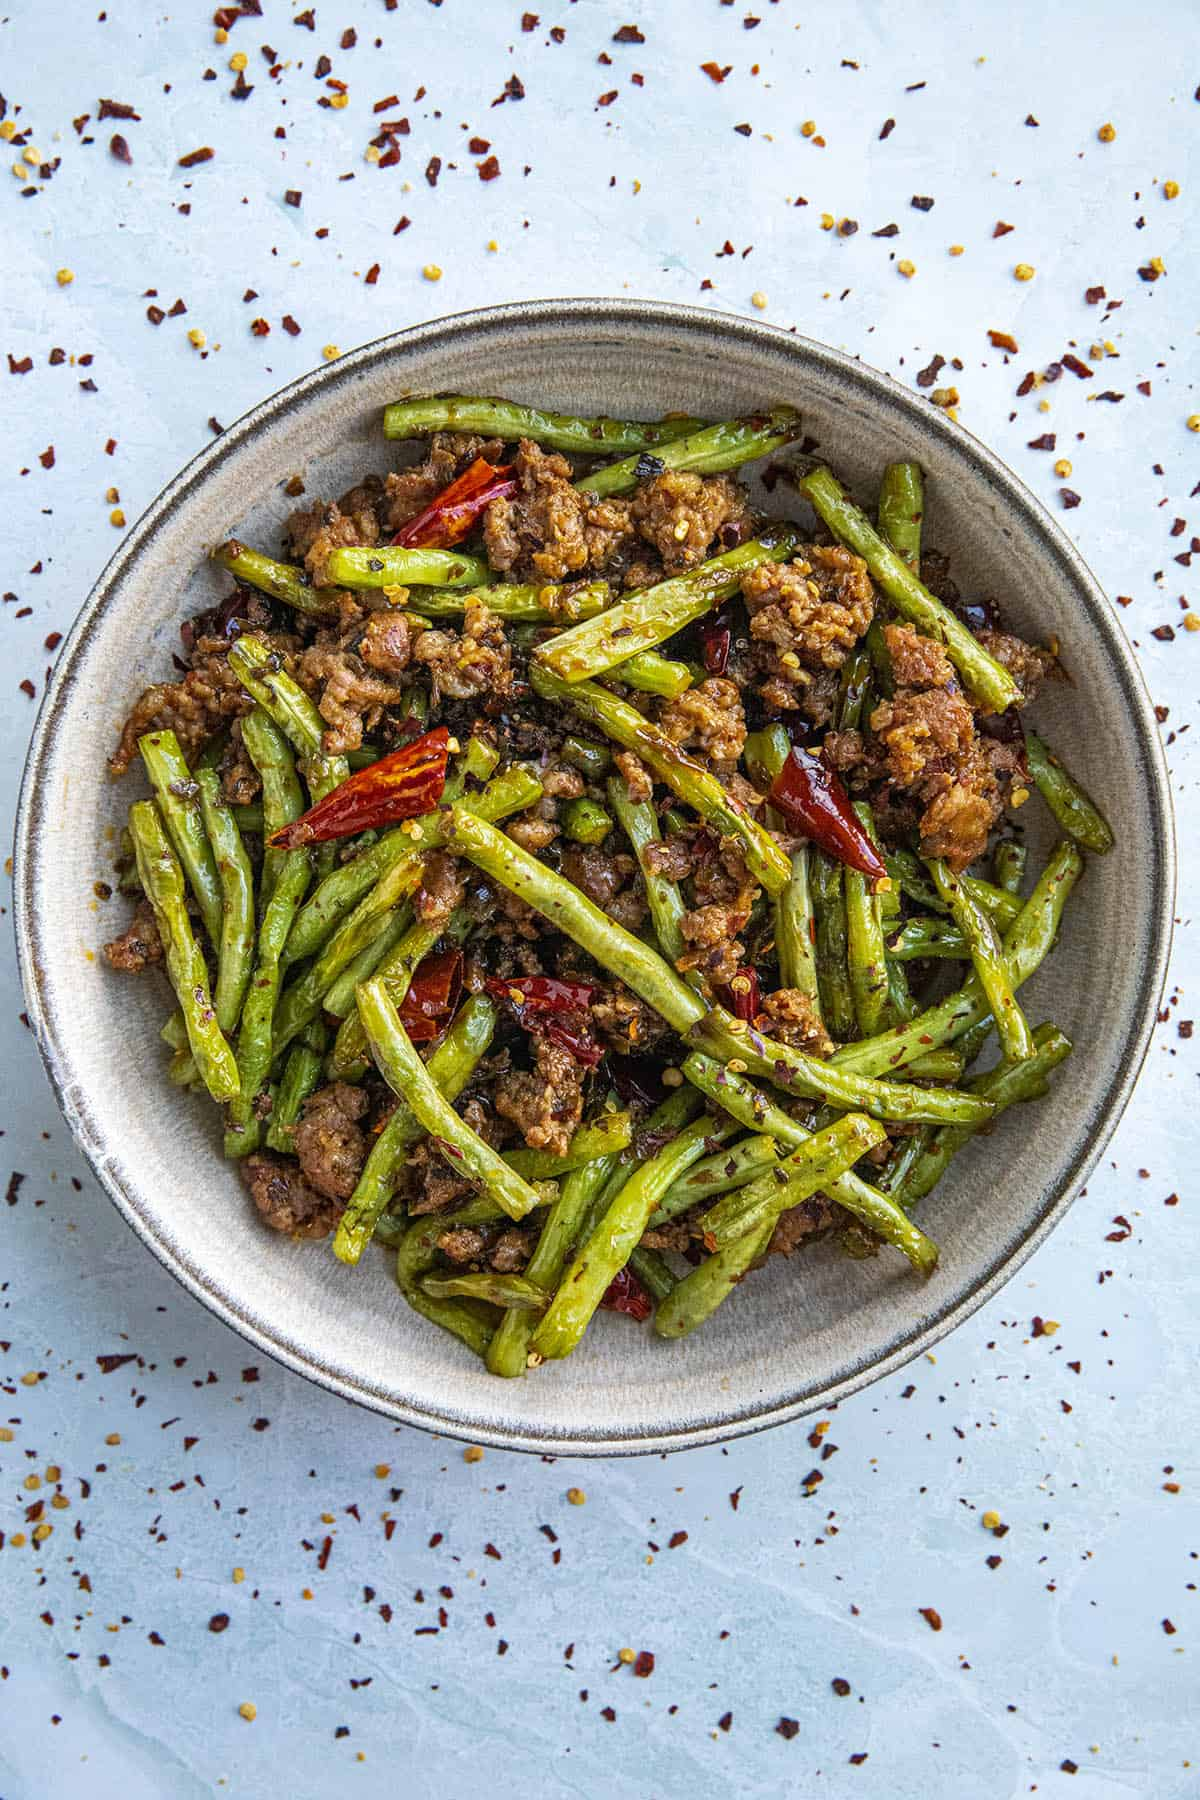 Sichuan Dry Fried Green Beans Recipe in a bowl, ready to serve